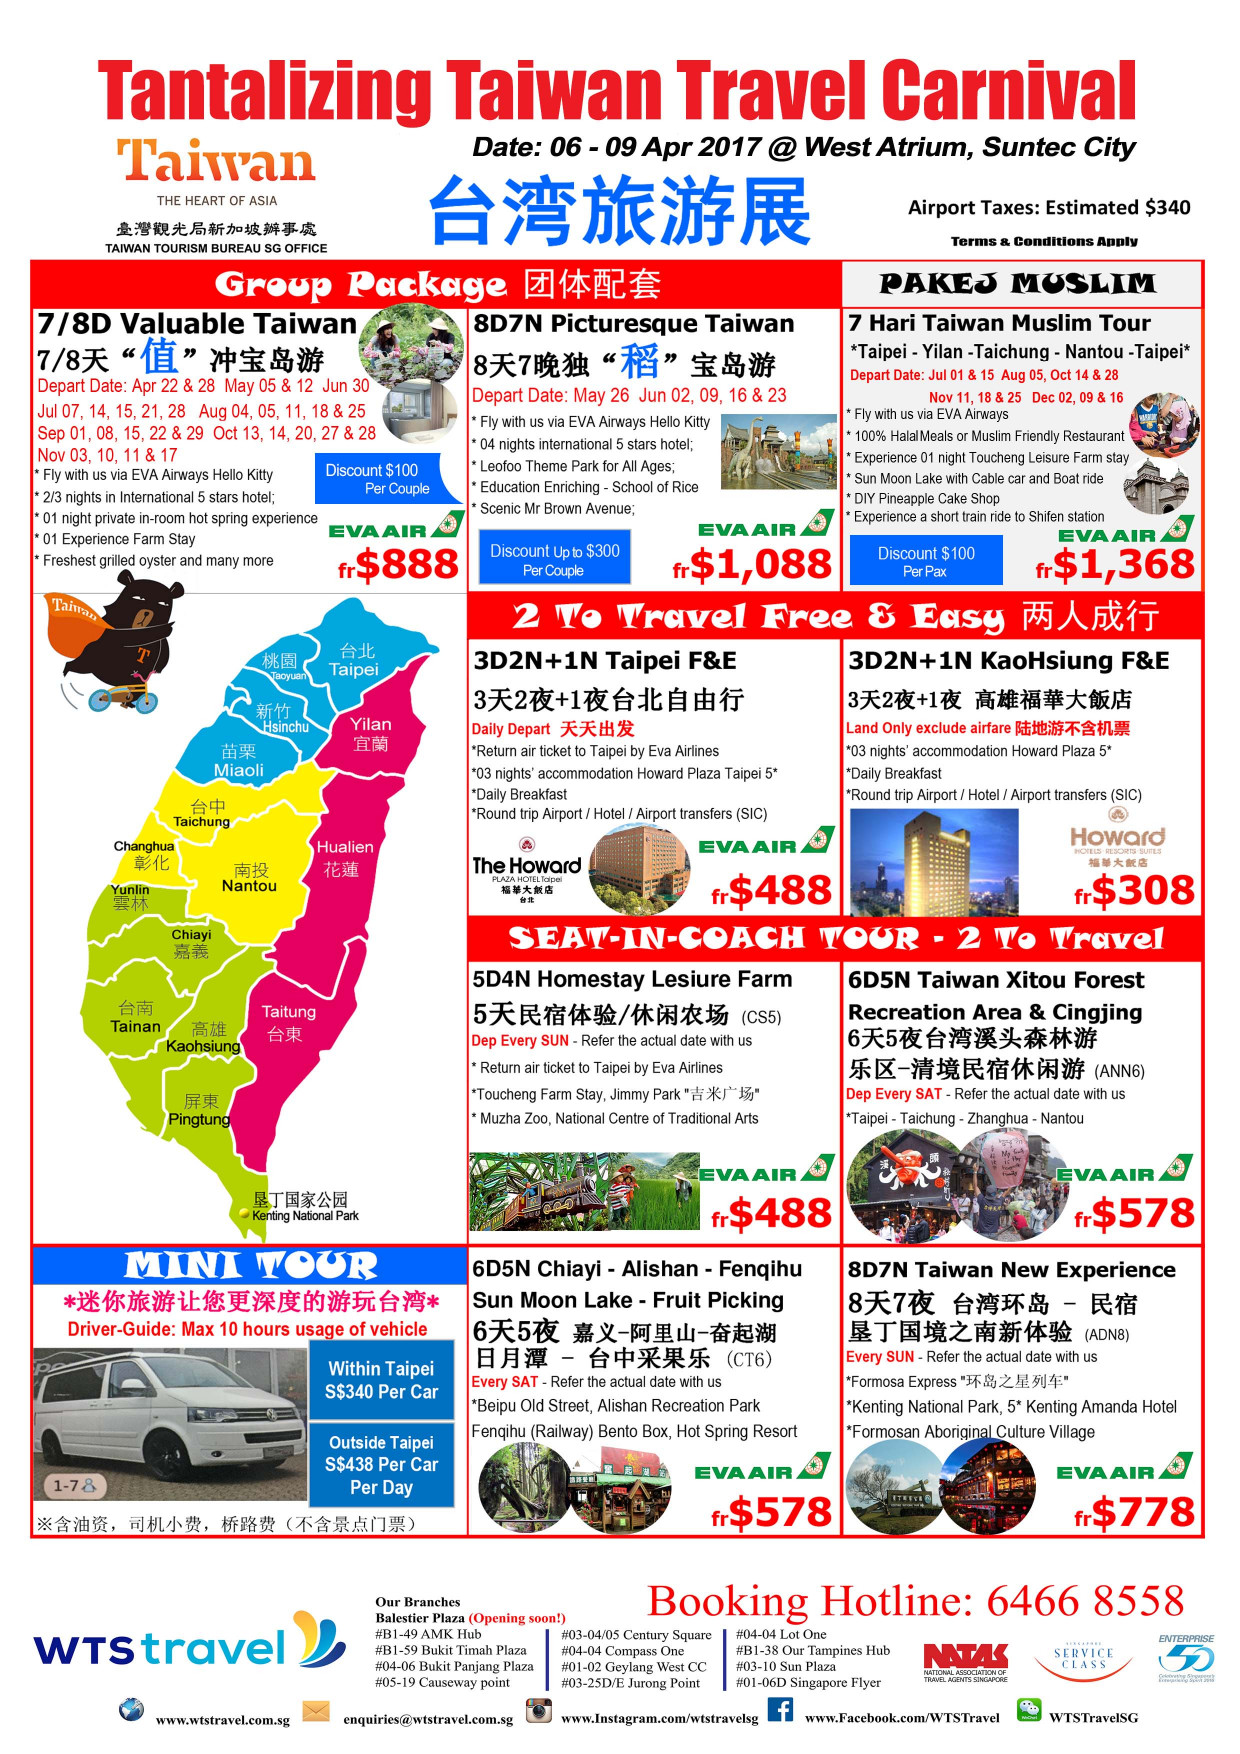 Wts travel taiwan travel carnival brochures download itinerary sciox Choice Image